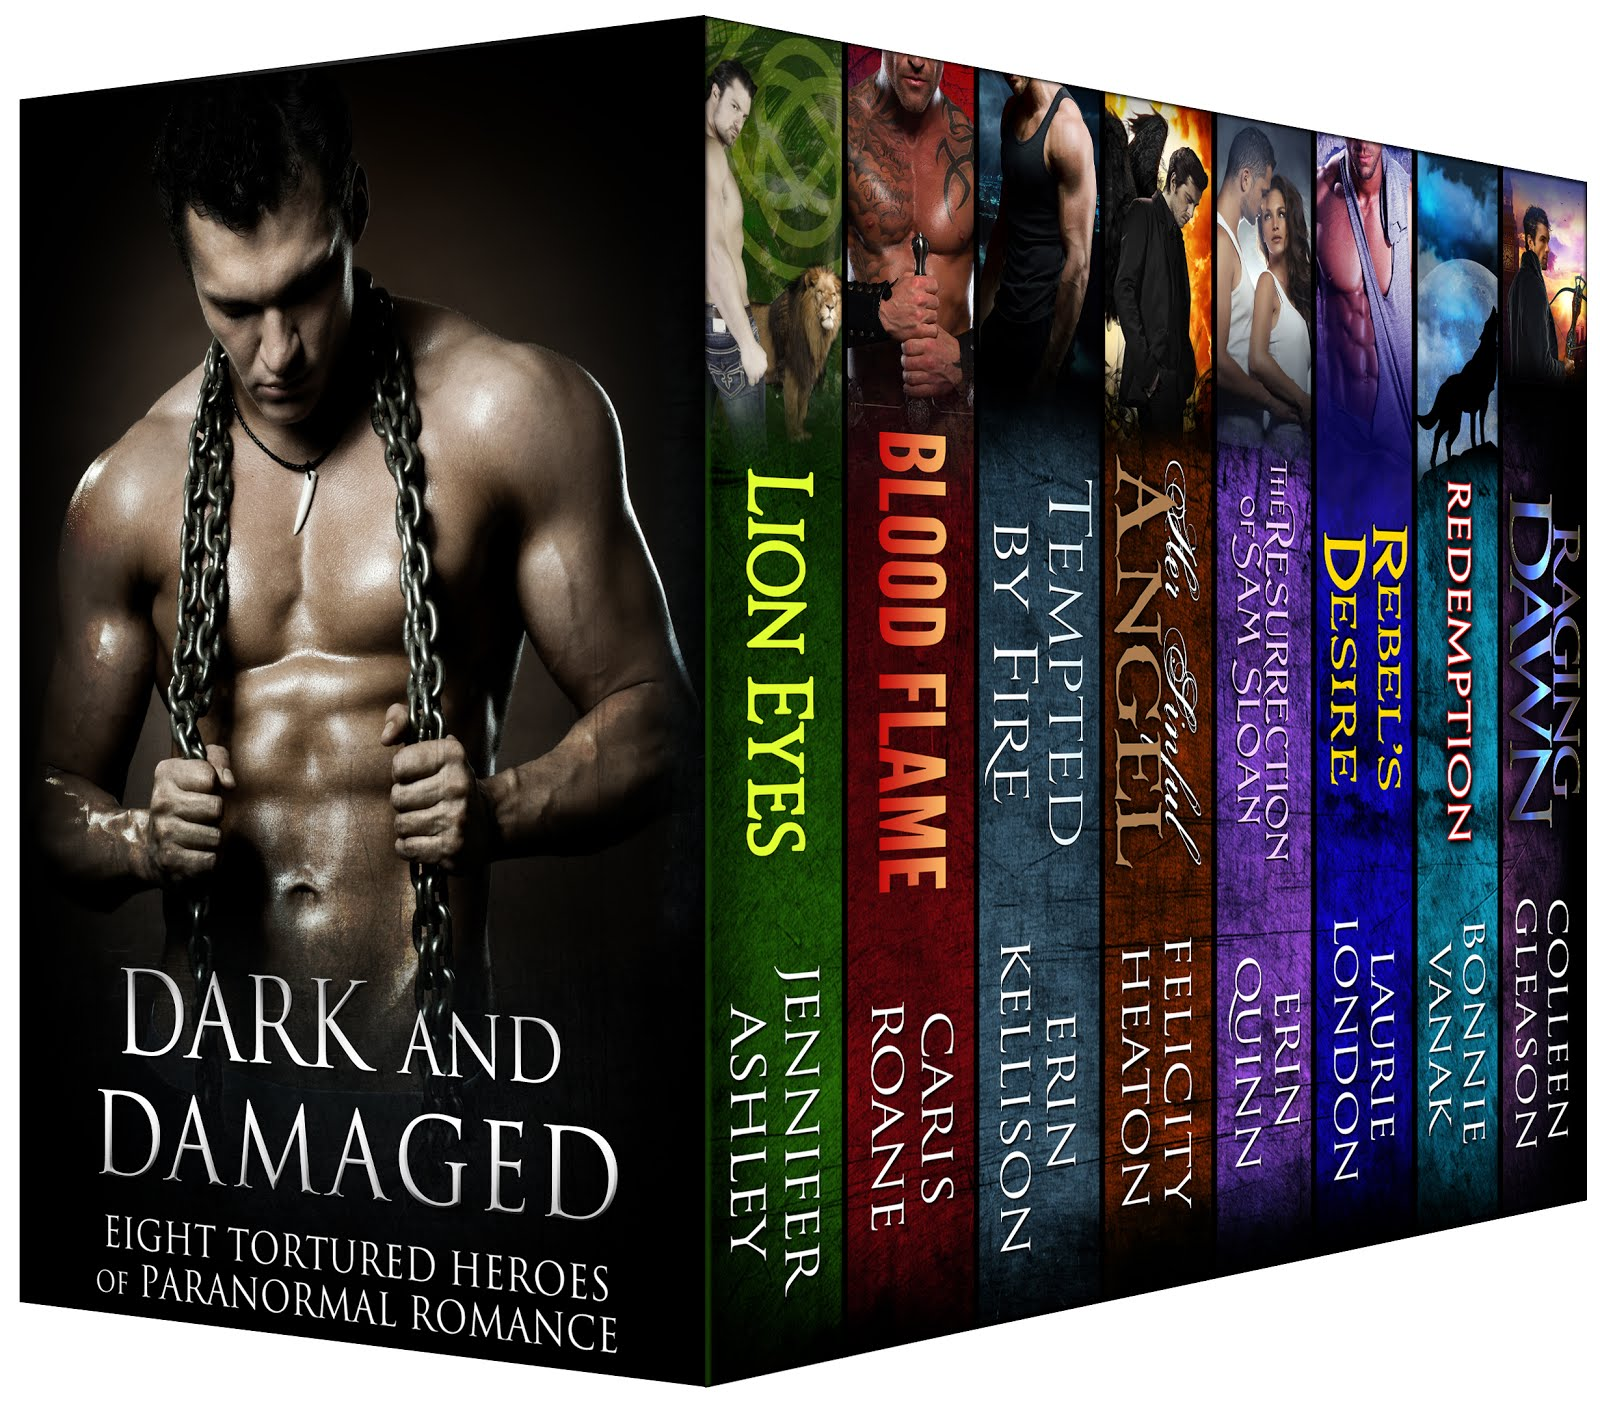 Only 99 cents! 8 NEW hot stories of tormented alpha males from 8 NY Times bestelling authors